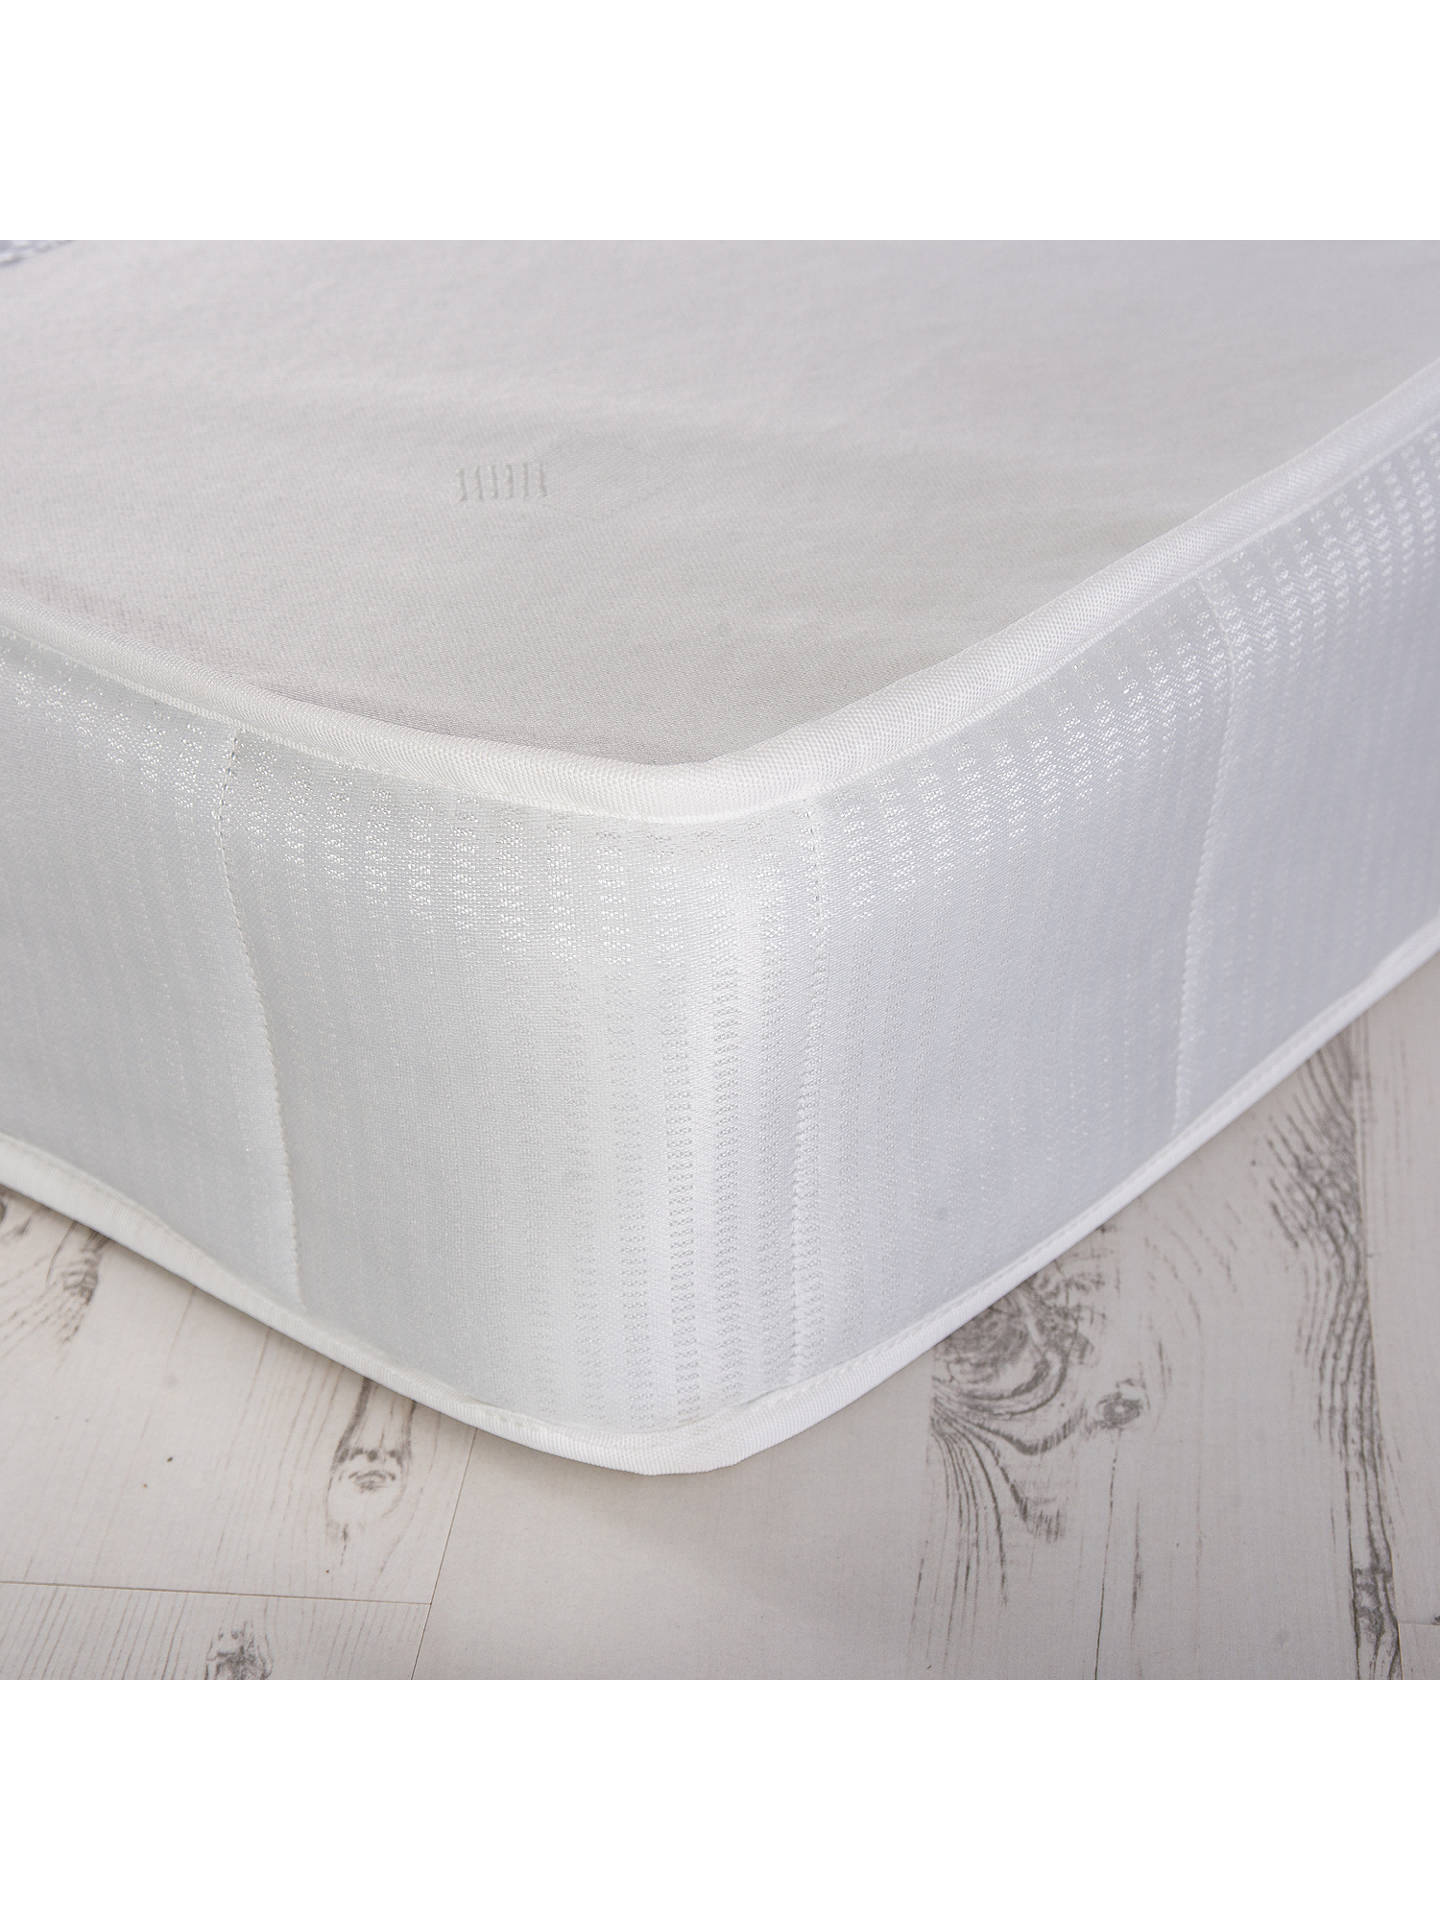 reputable site 52cd3 1f100 House by John Lewis Rest One Open Coil Mattress, Medium Tension, Single